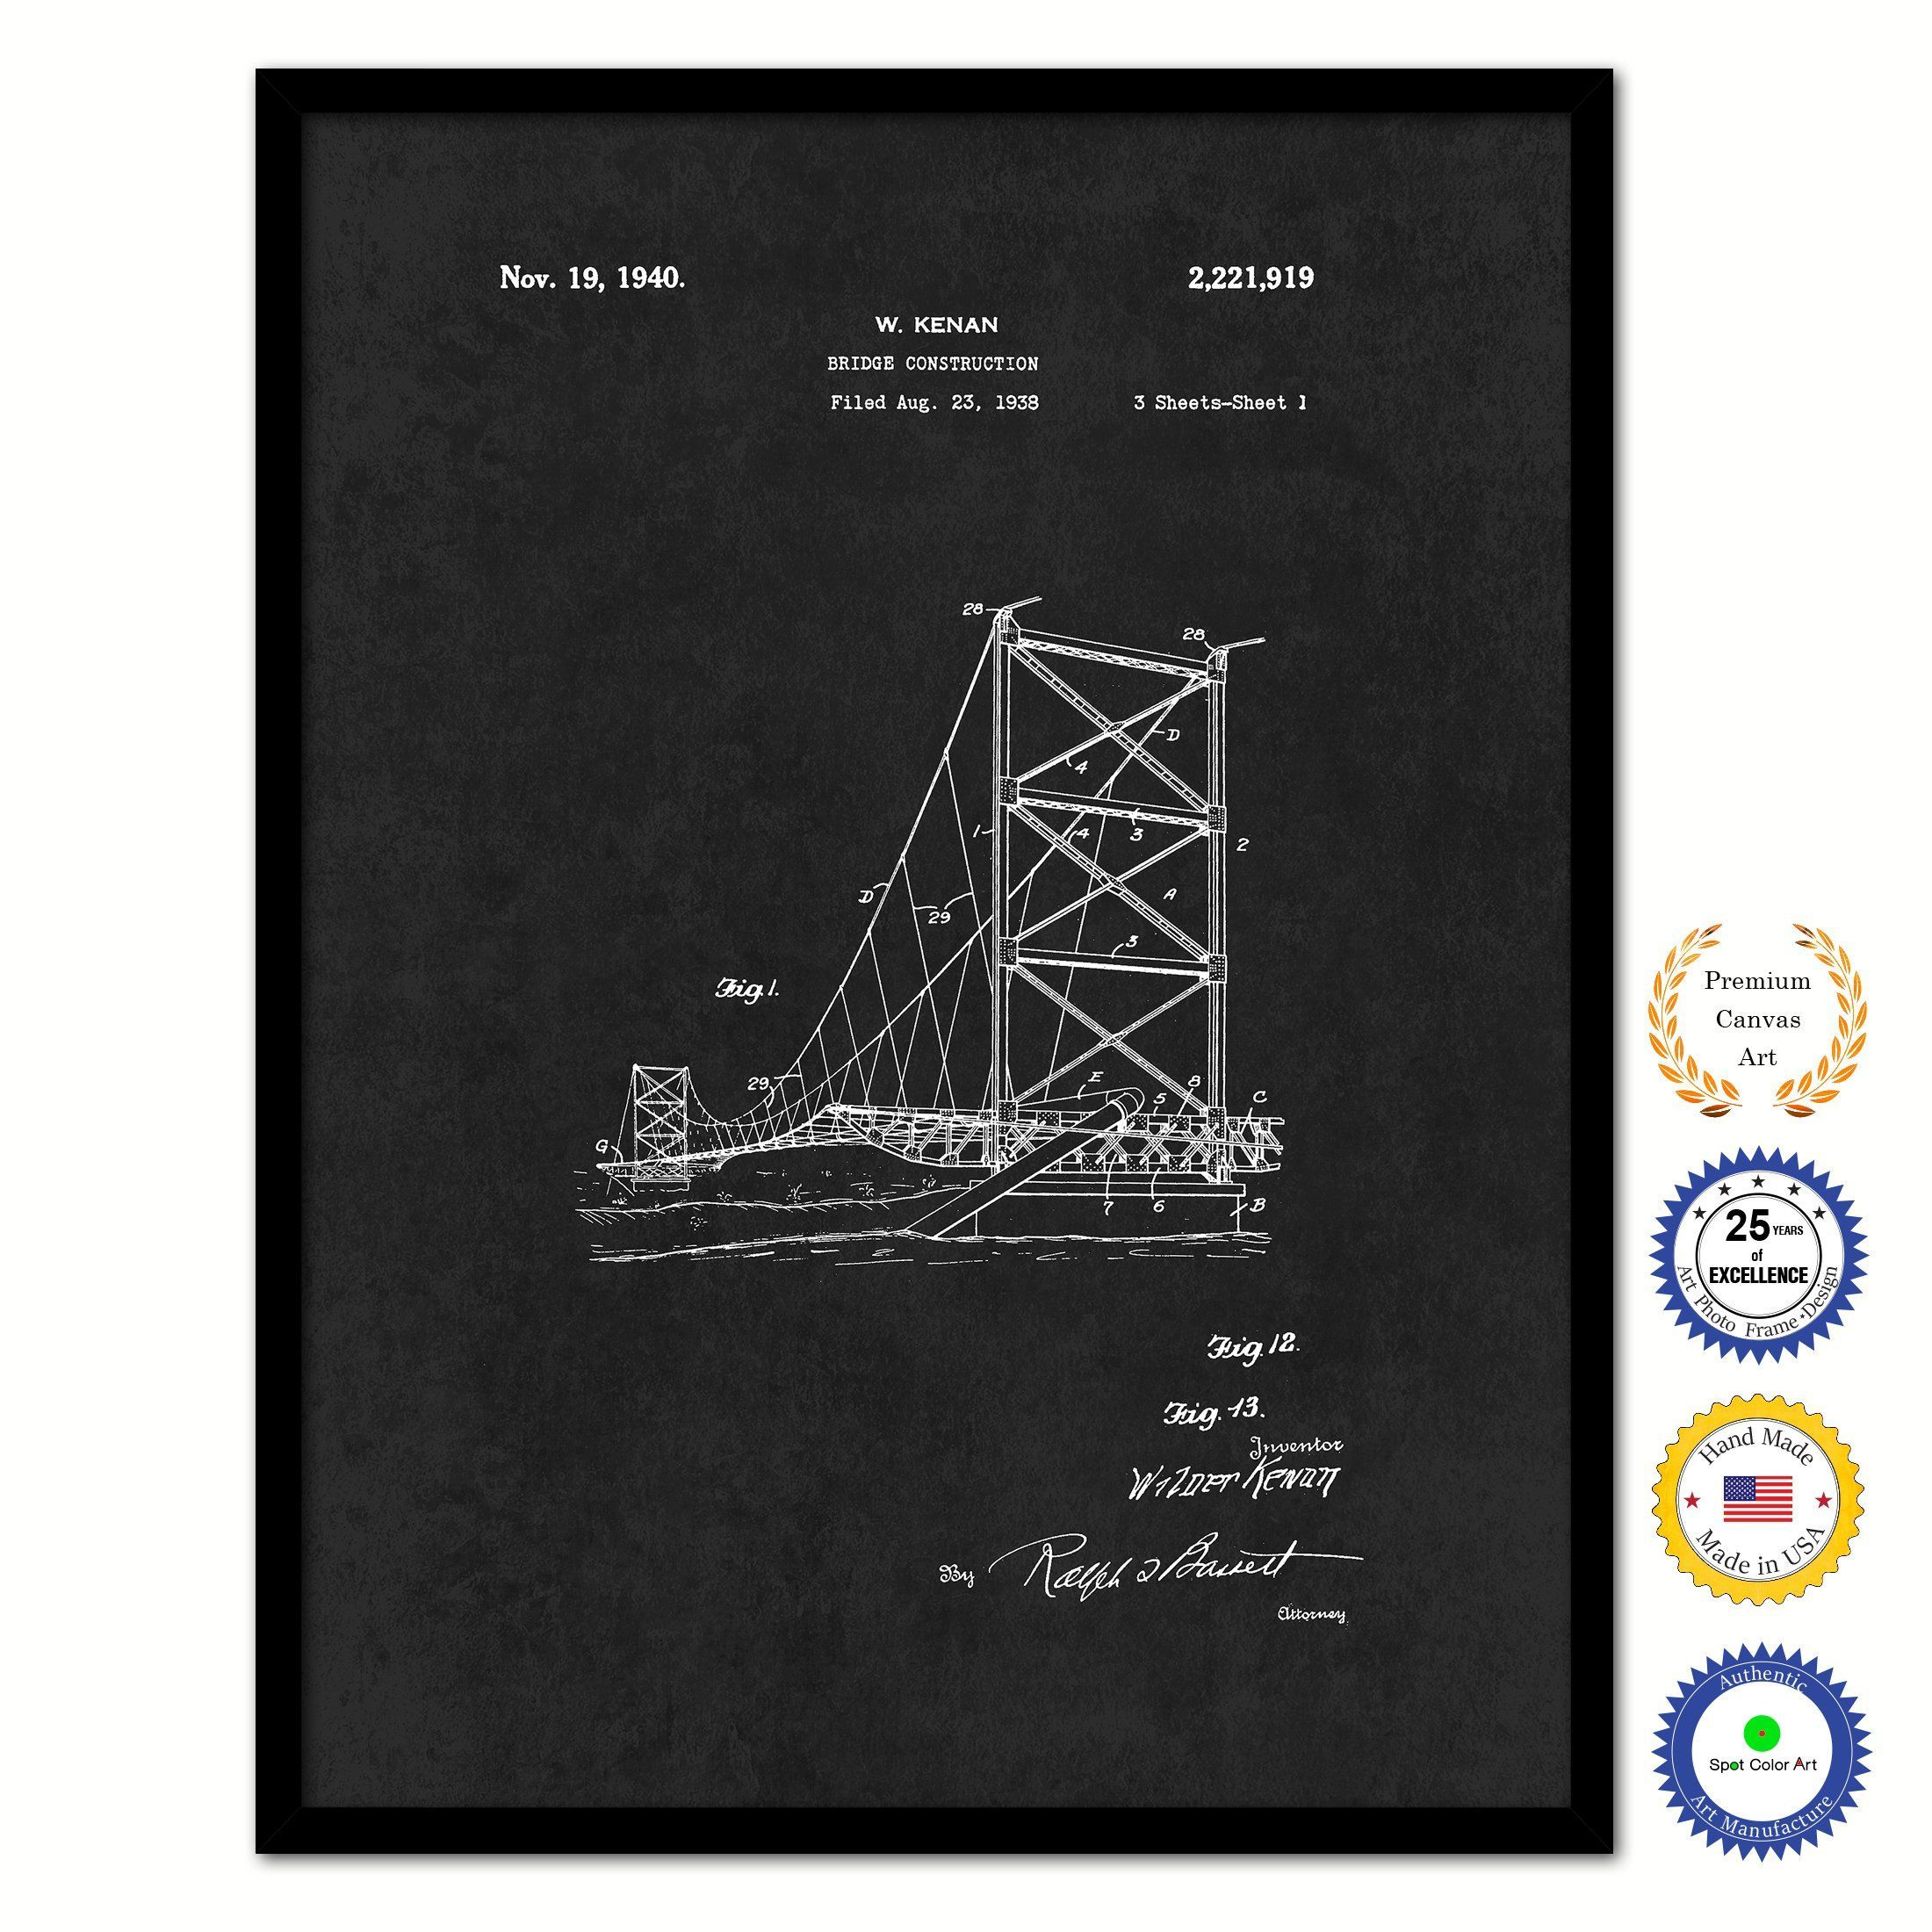 Great Gifts For Architects 1940 Bridge Construction Vintage Patent Artwork Black Framed